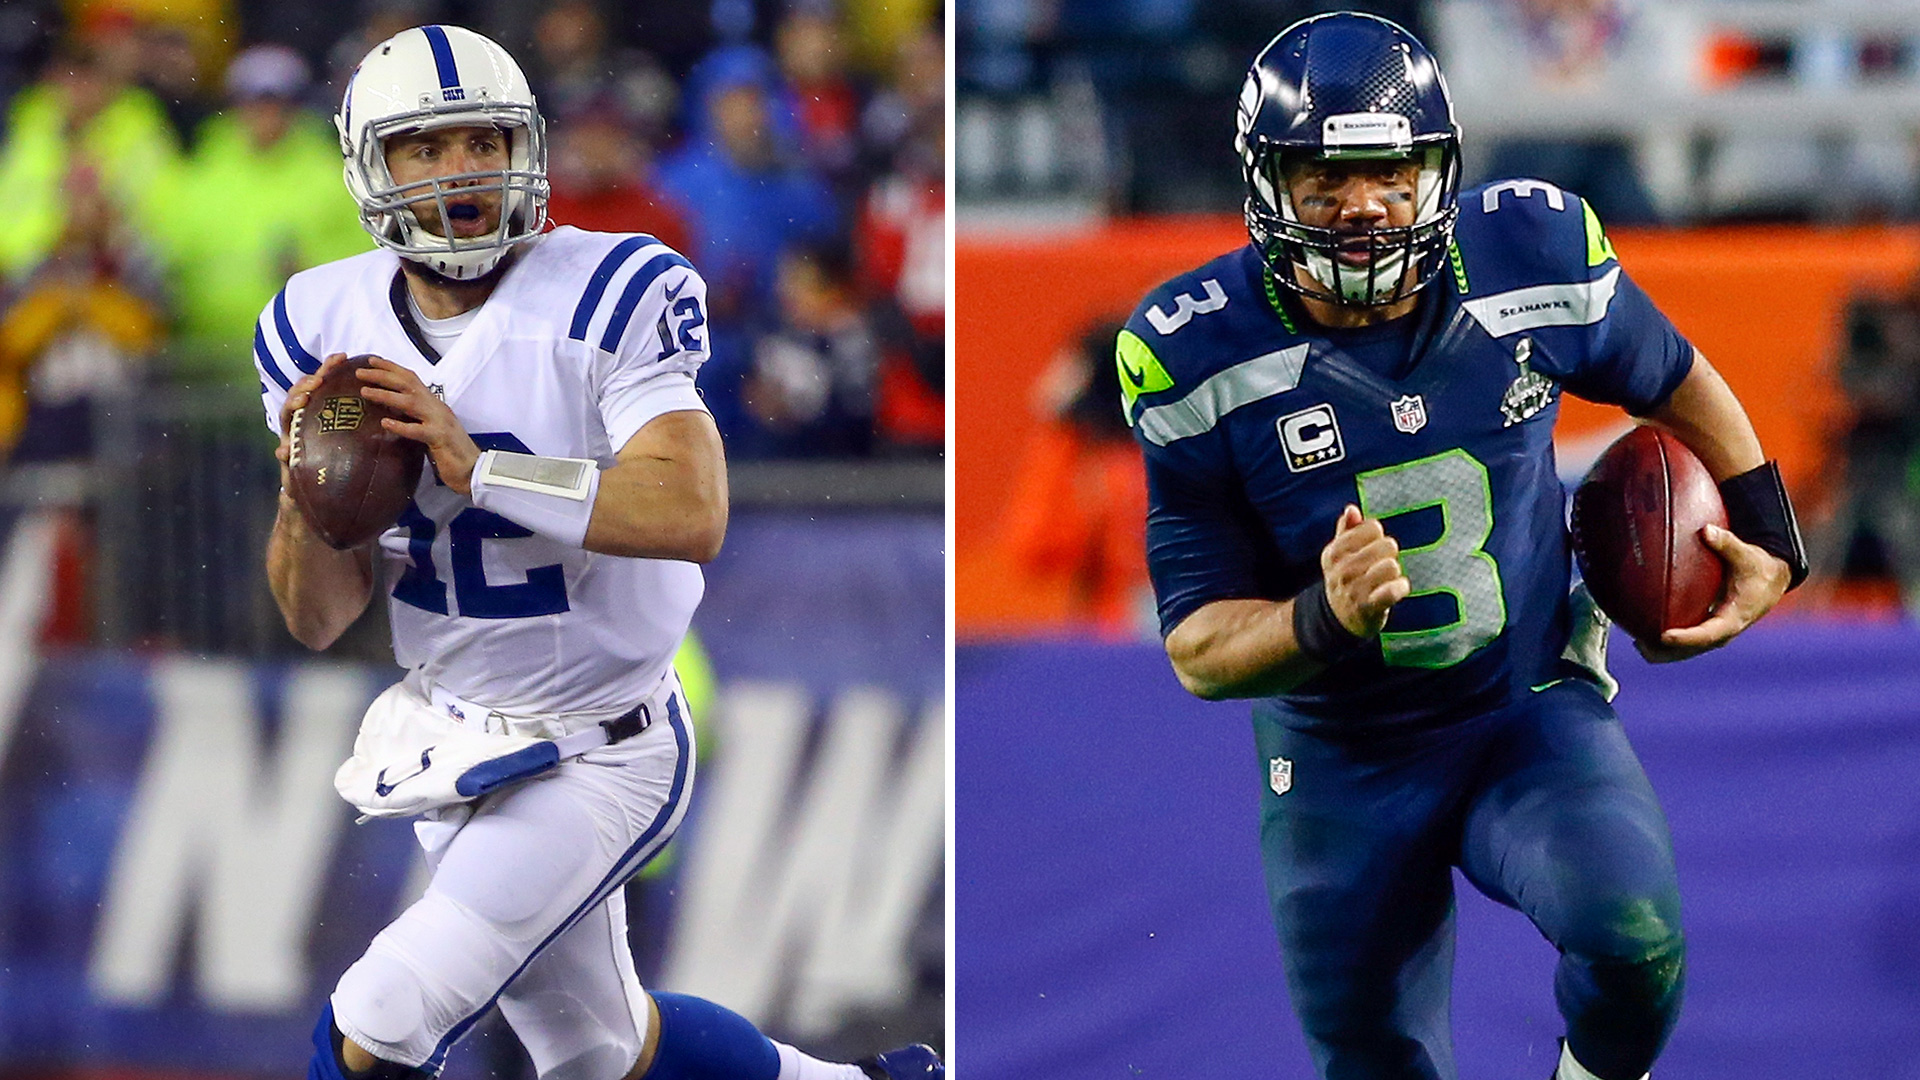 Who's worth more, Russell Wilson or Andrew Luck?